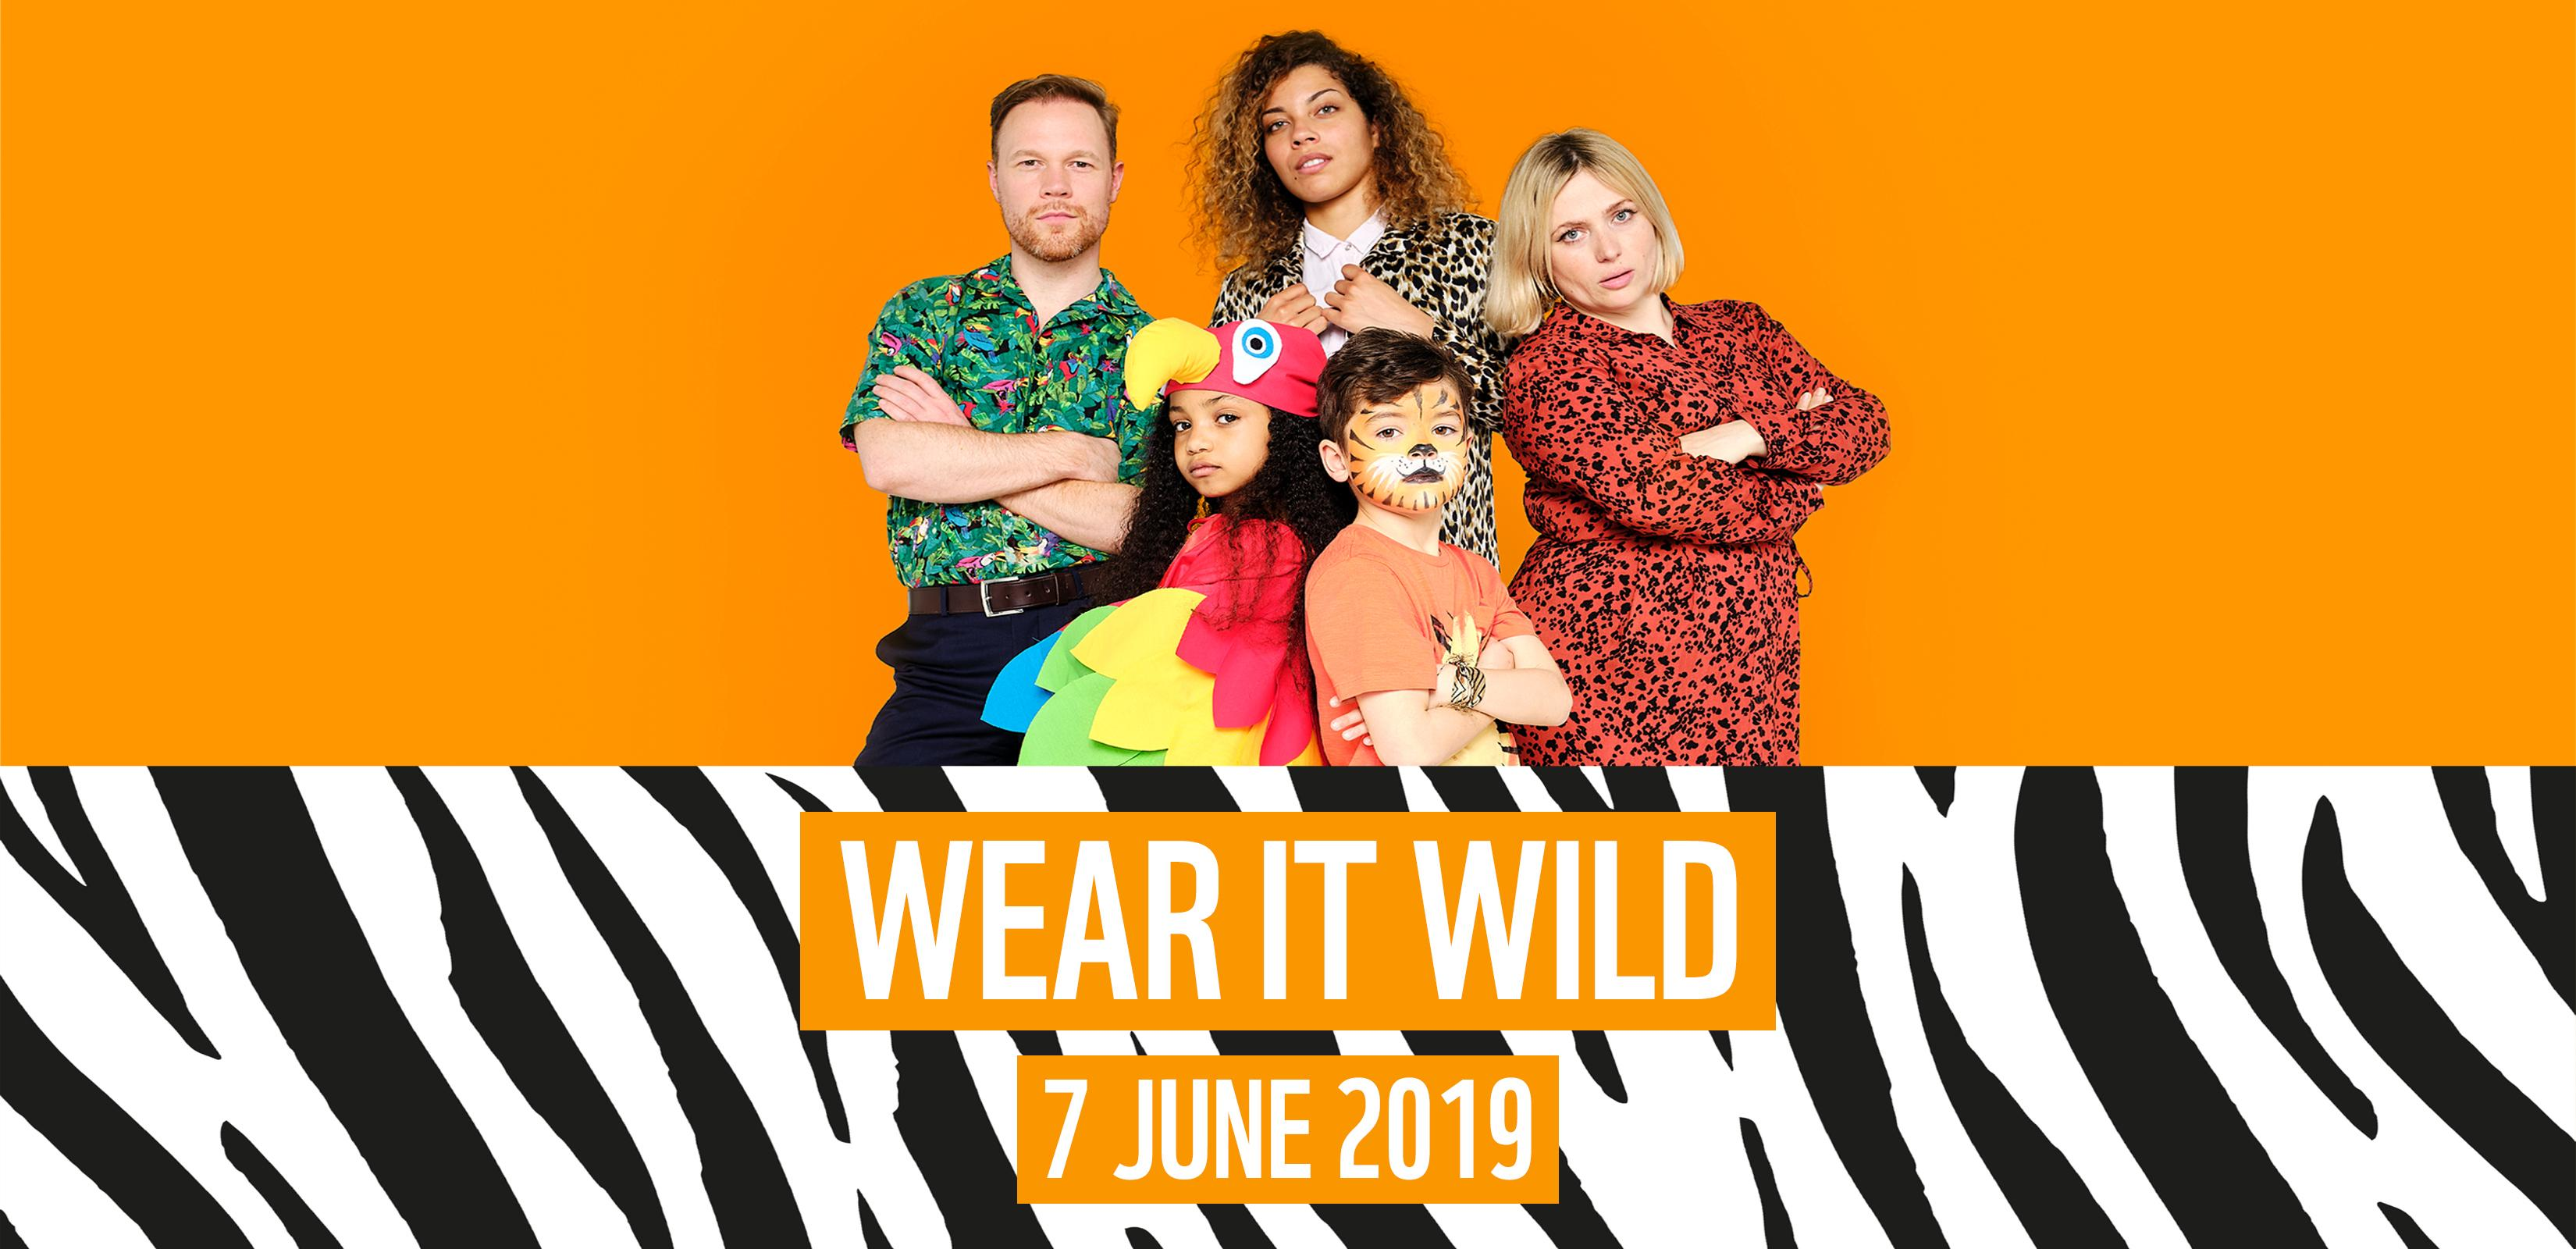 Wear it wild on Friday 7 June